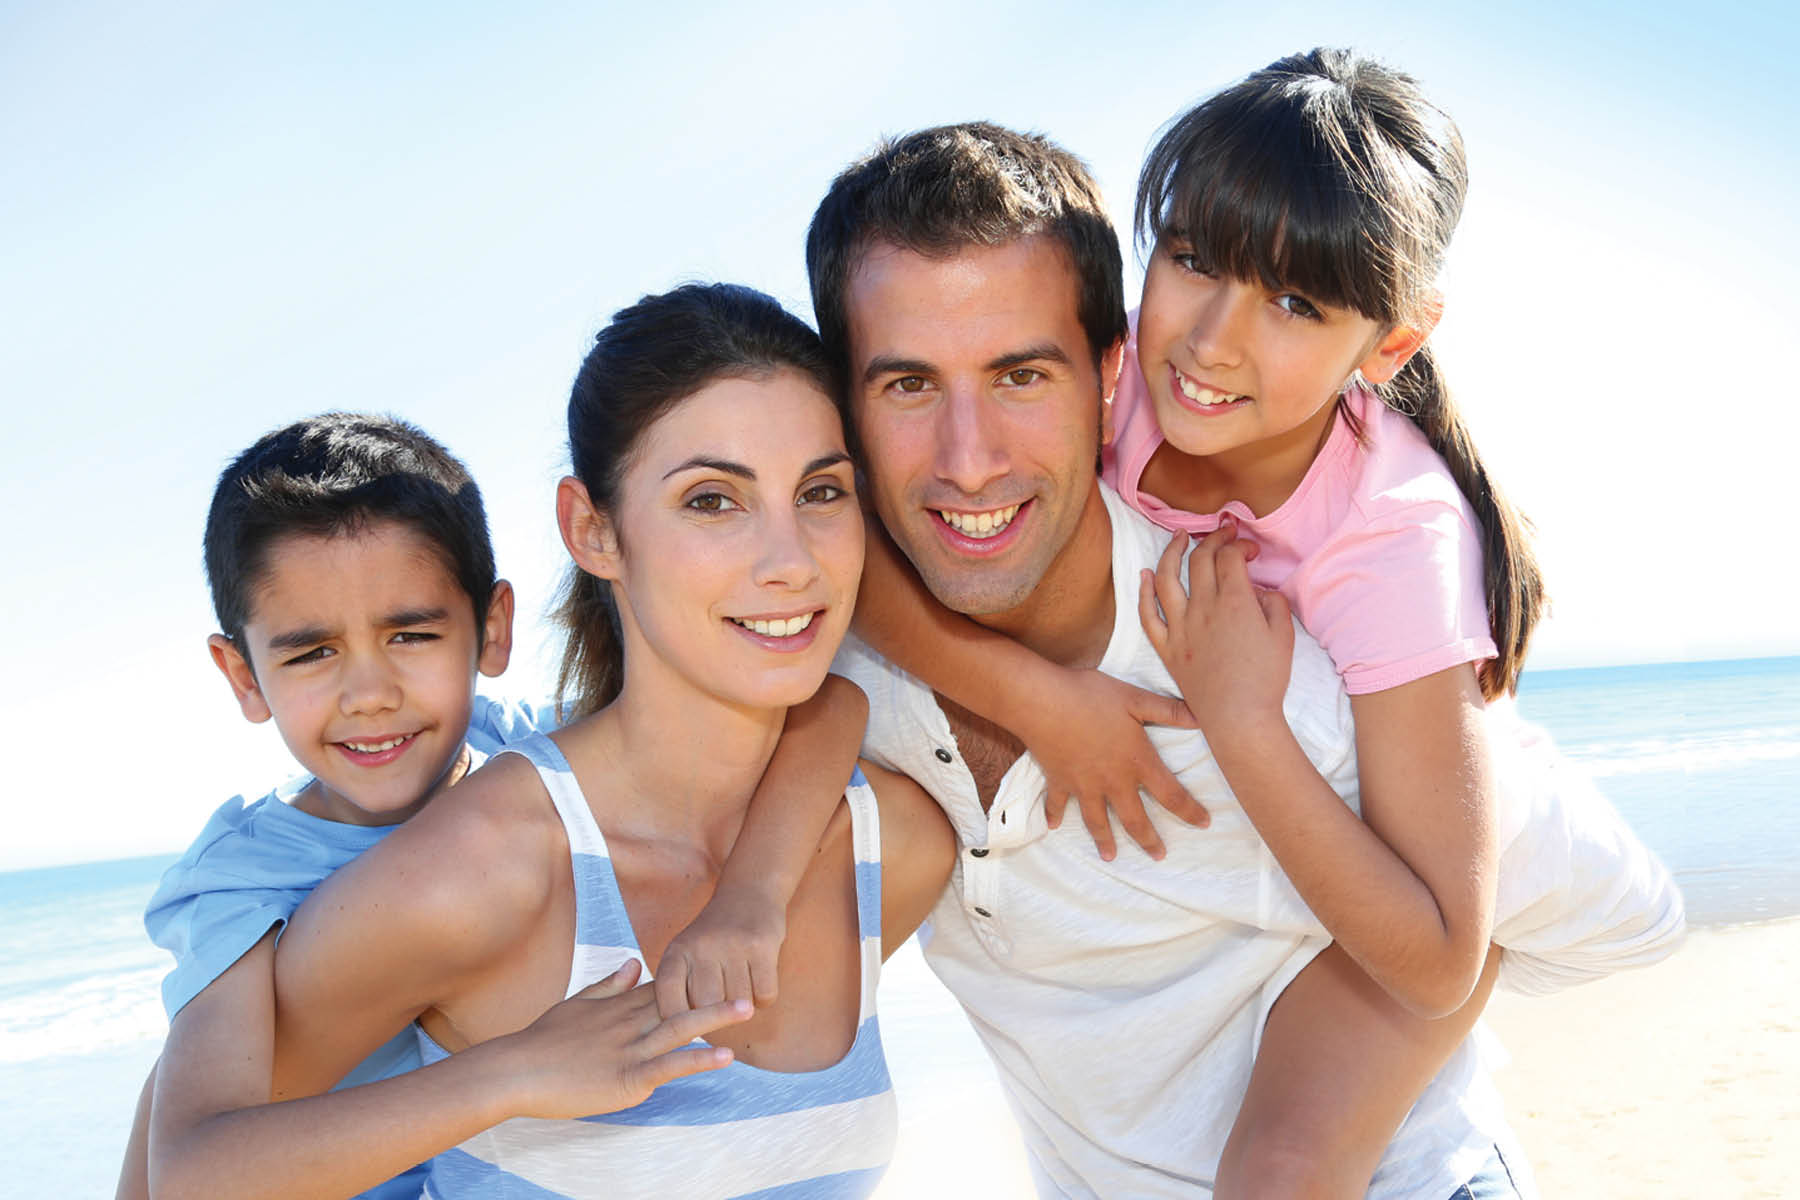 orthodontists in riverdale, maryland